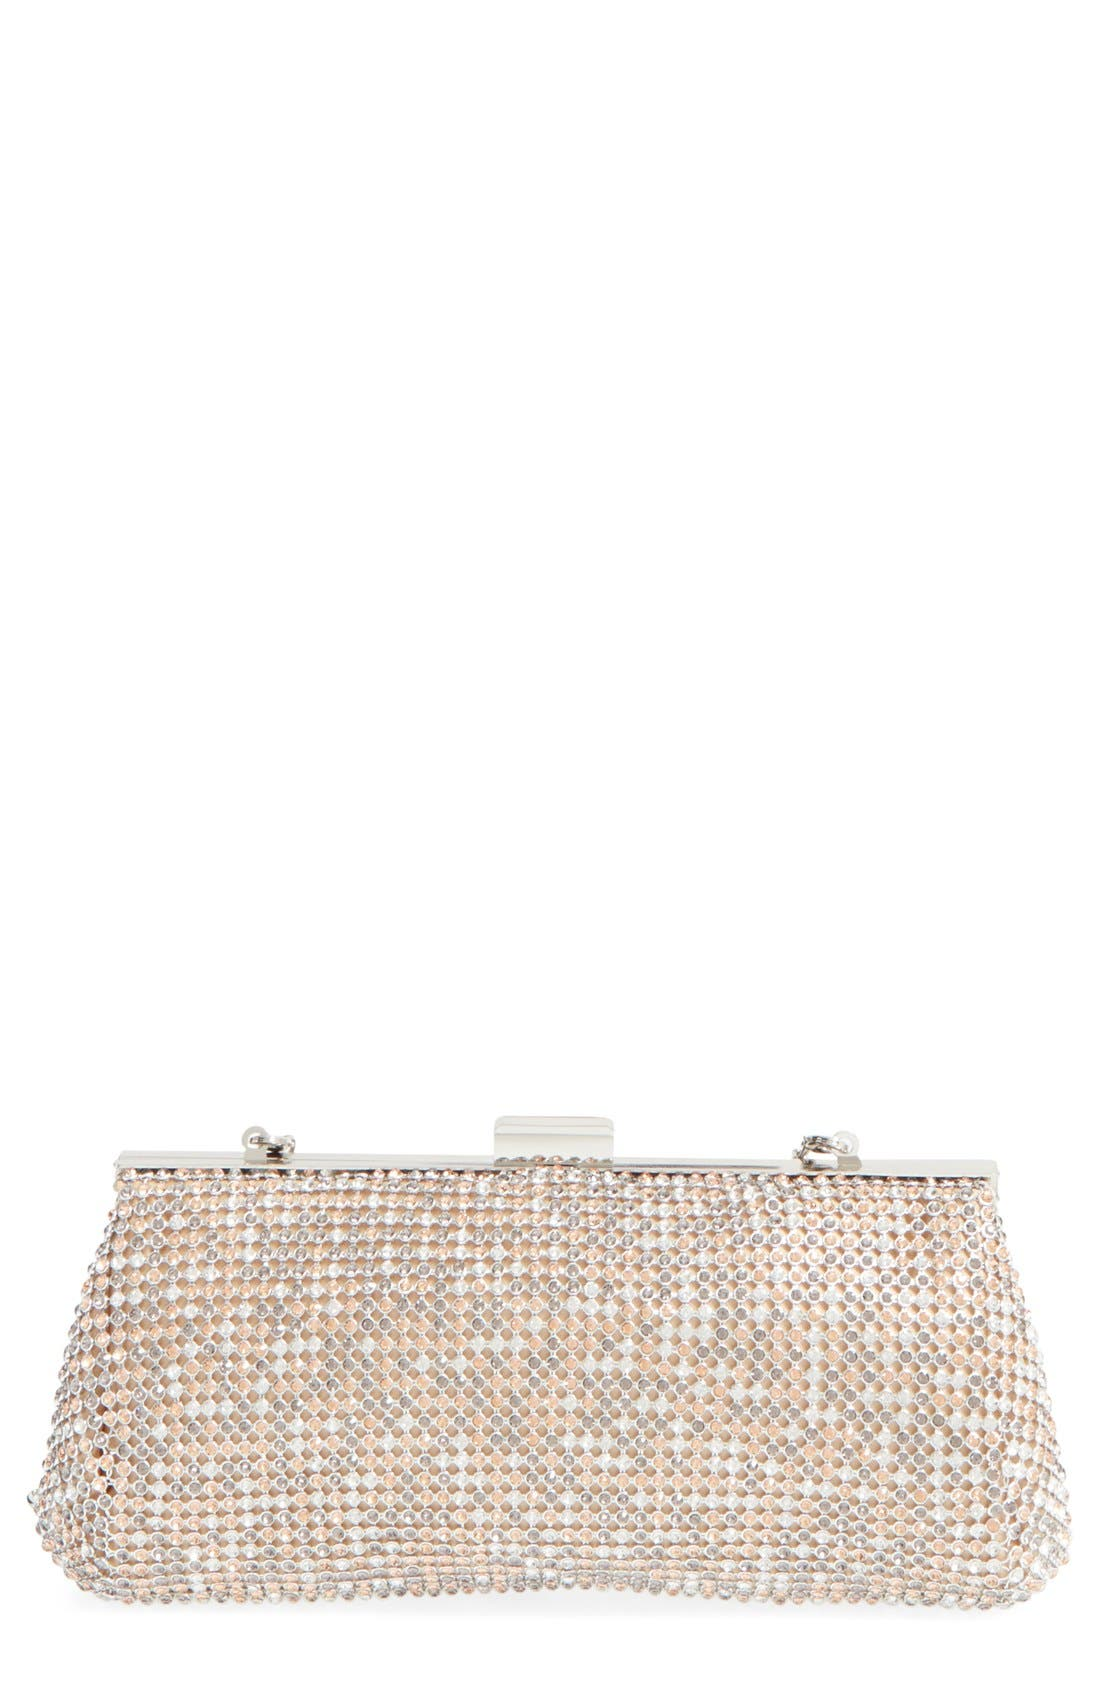 Alternate Image 1 Selected - Glint Crystal Mesh Clutch